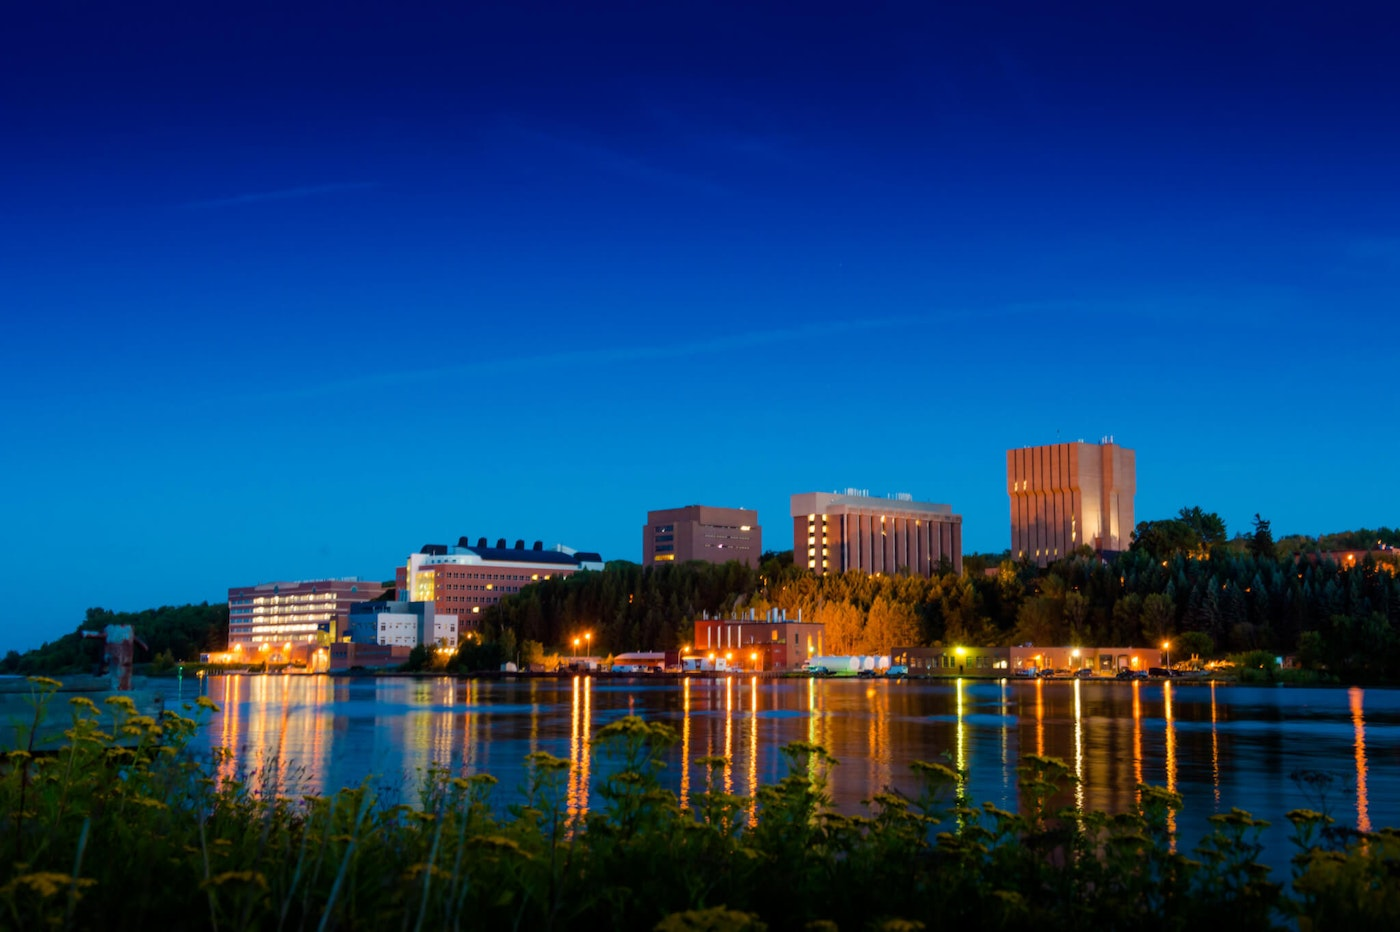 Michigan Tech in Houghton, at night. Photo by Jcvertin - Own work, CC BY-SA 4.0 via Wikimedia Commons